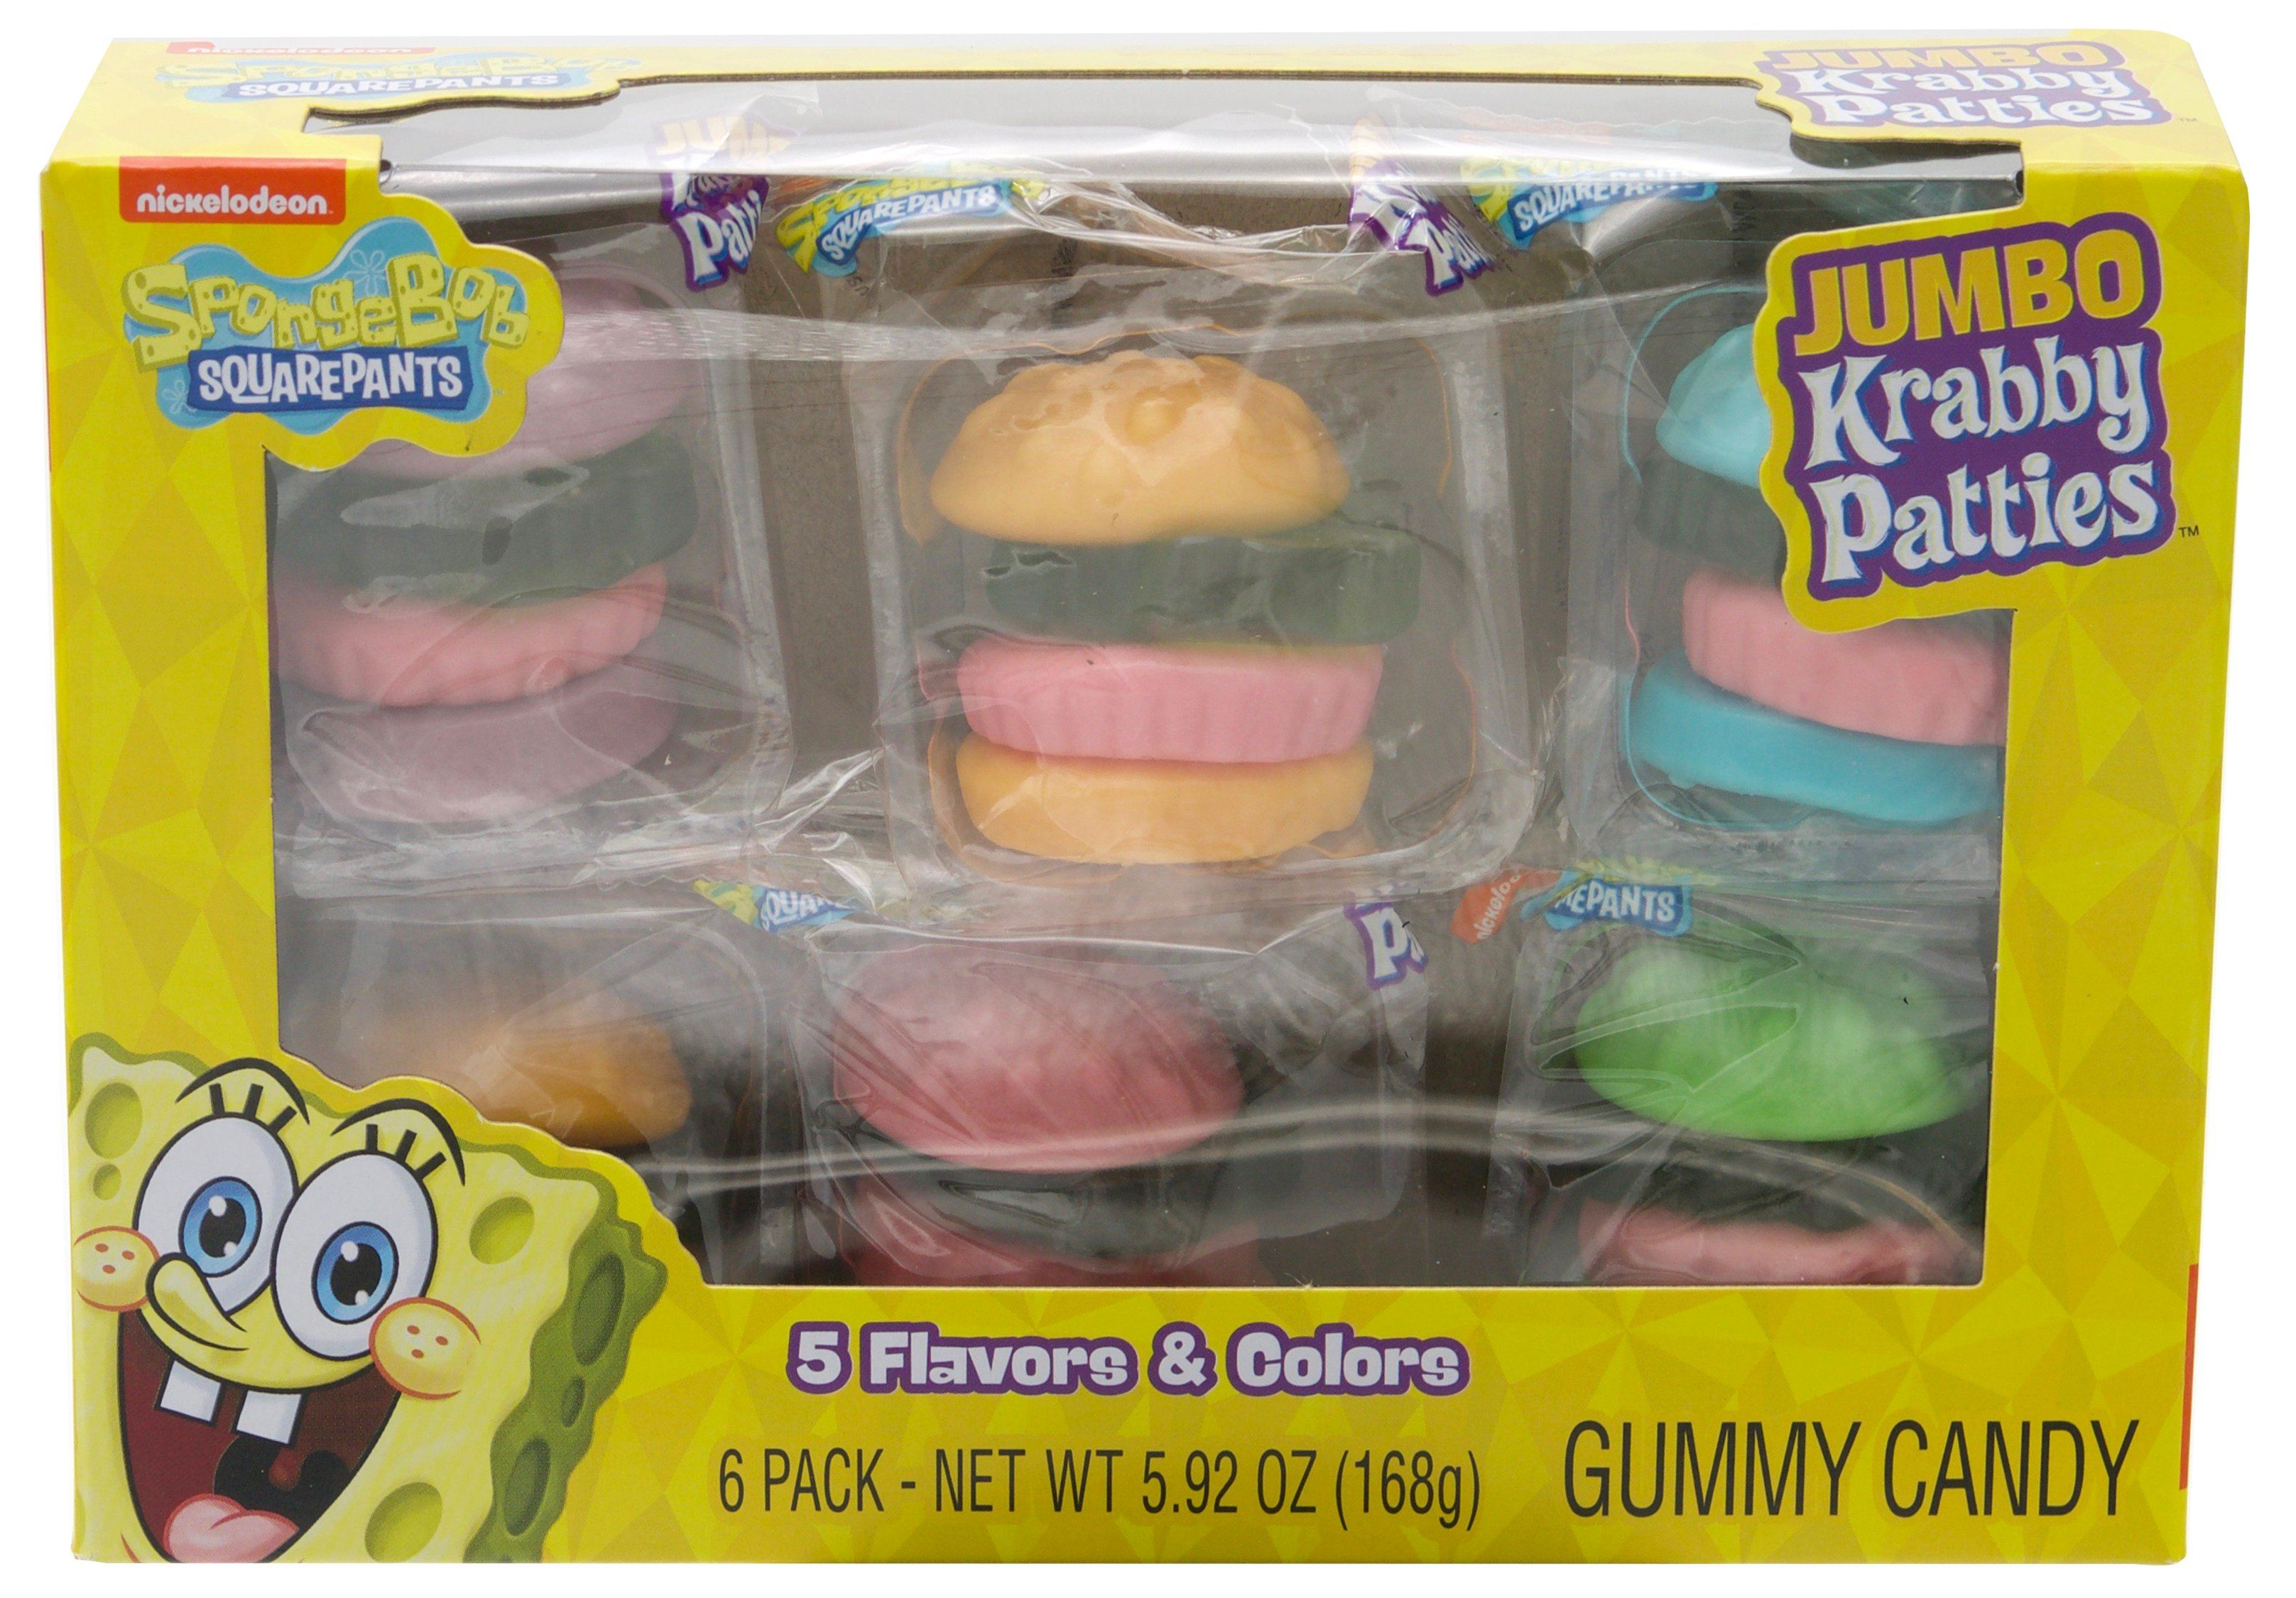 Krabby Patties Gummy Candy Frankford Candy Jumbo 5.92 Ounce